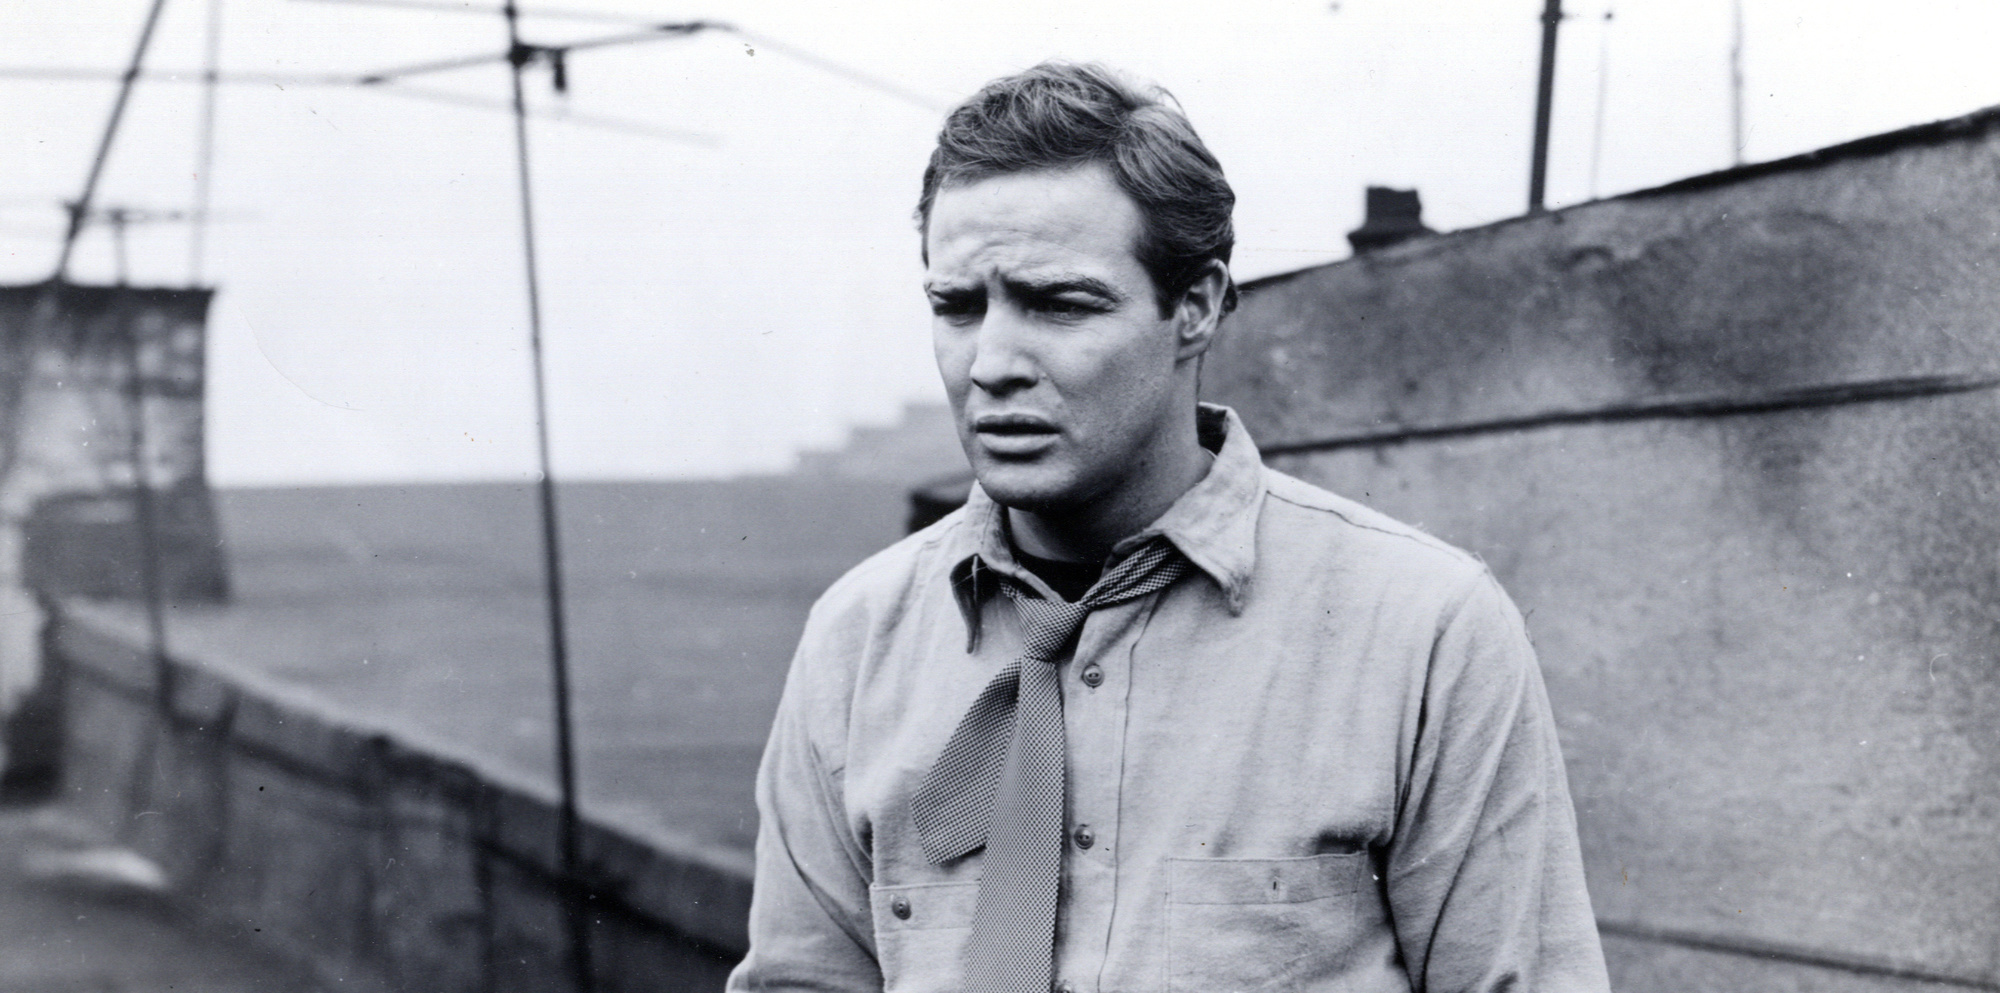 On the Waterfront. 1954. USA. Directed by Elia Kazan